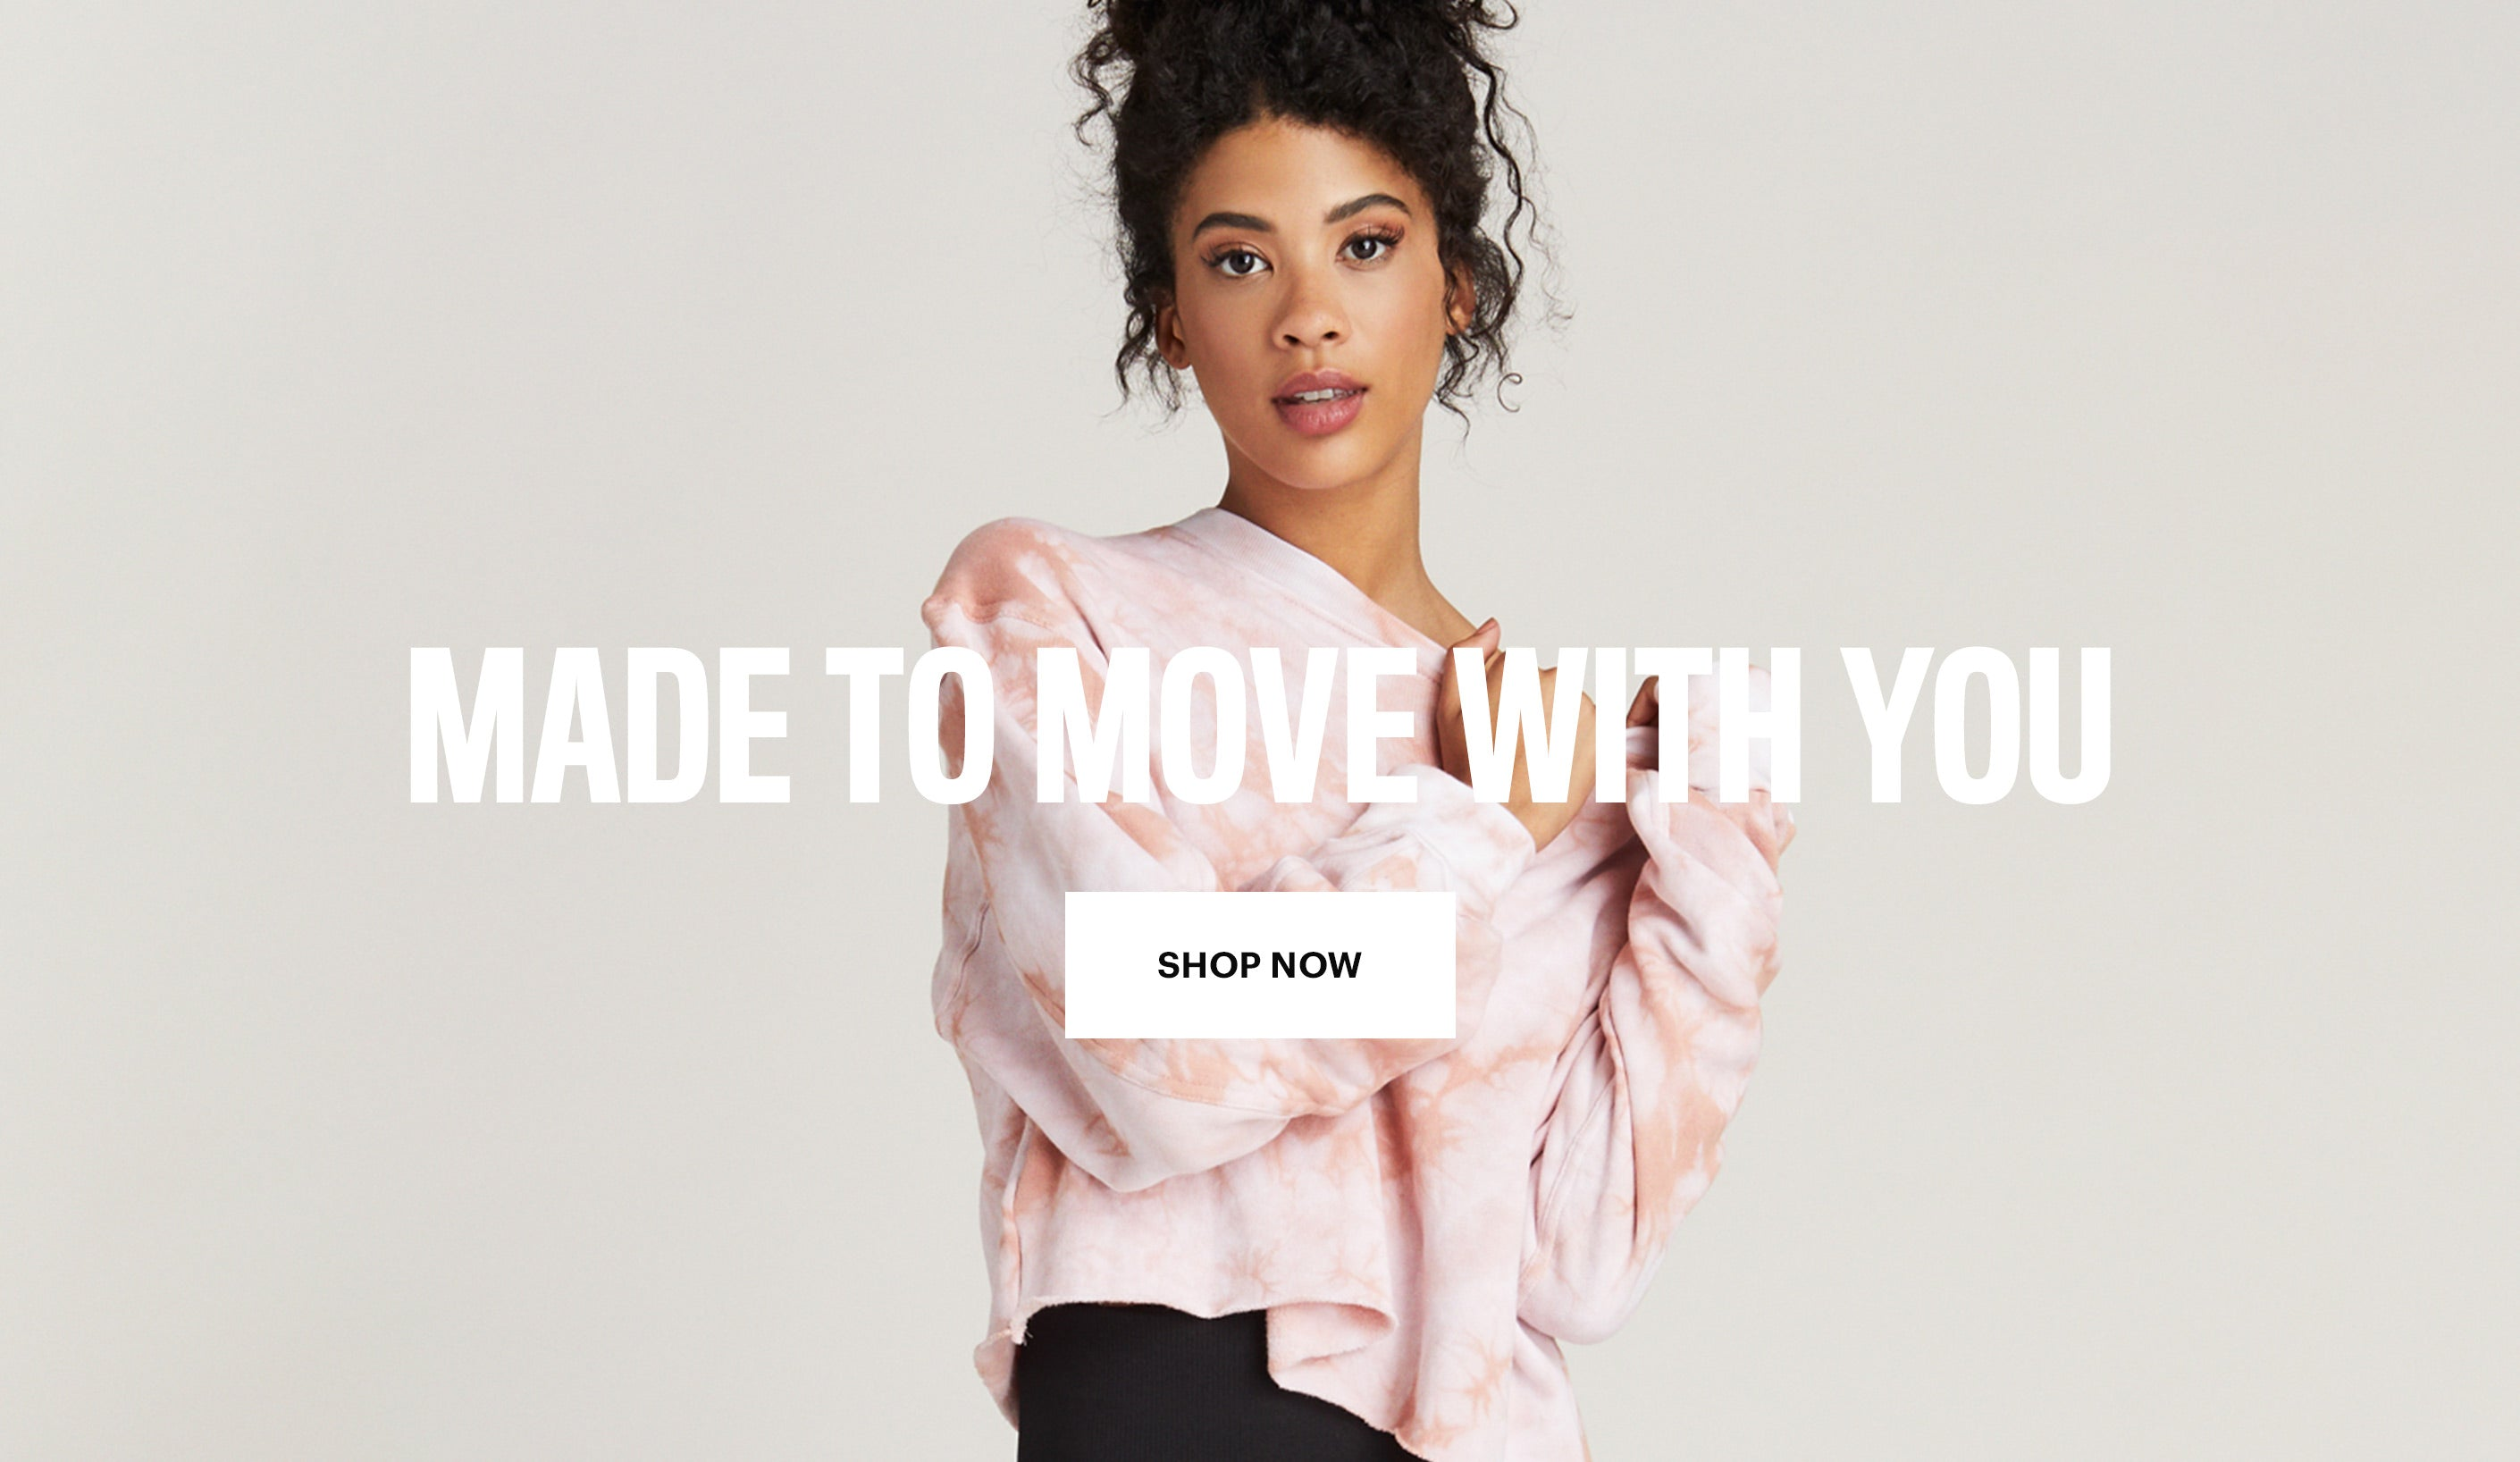 MADE TO MOVE WITH YOU — SHOP NOW